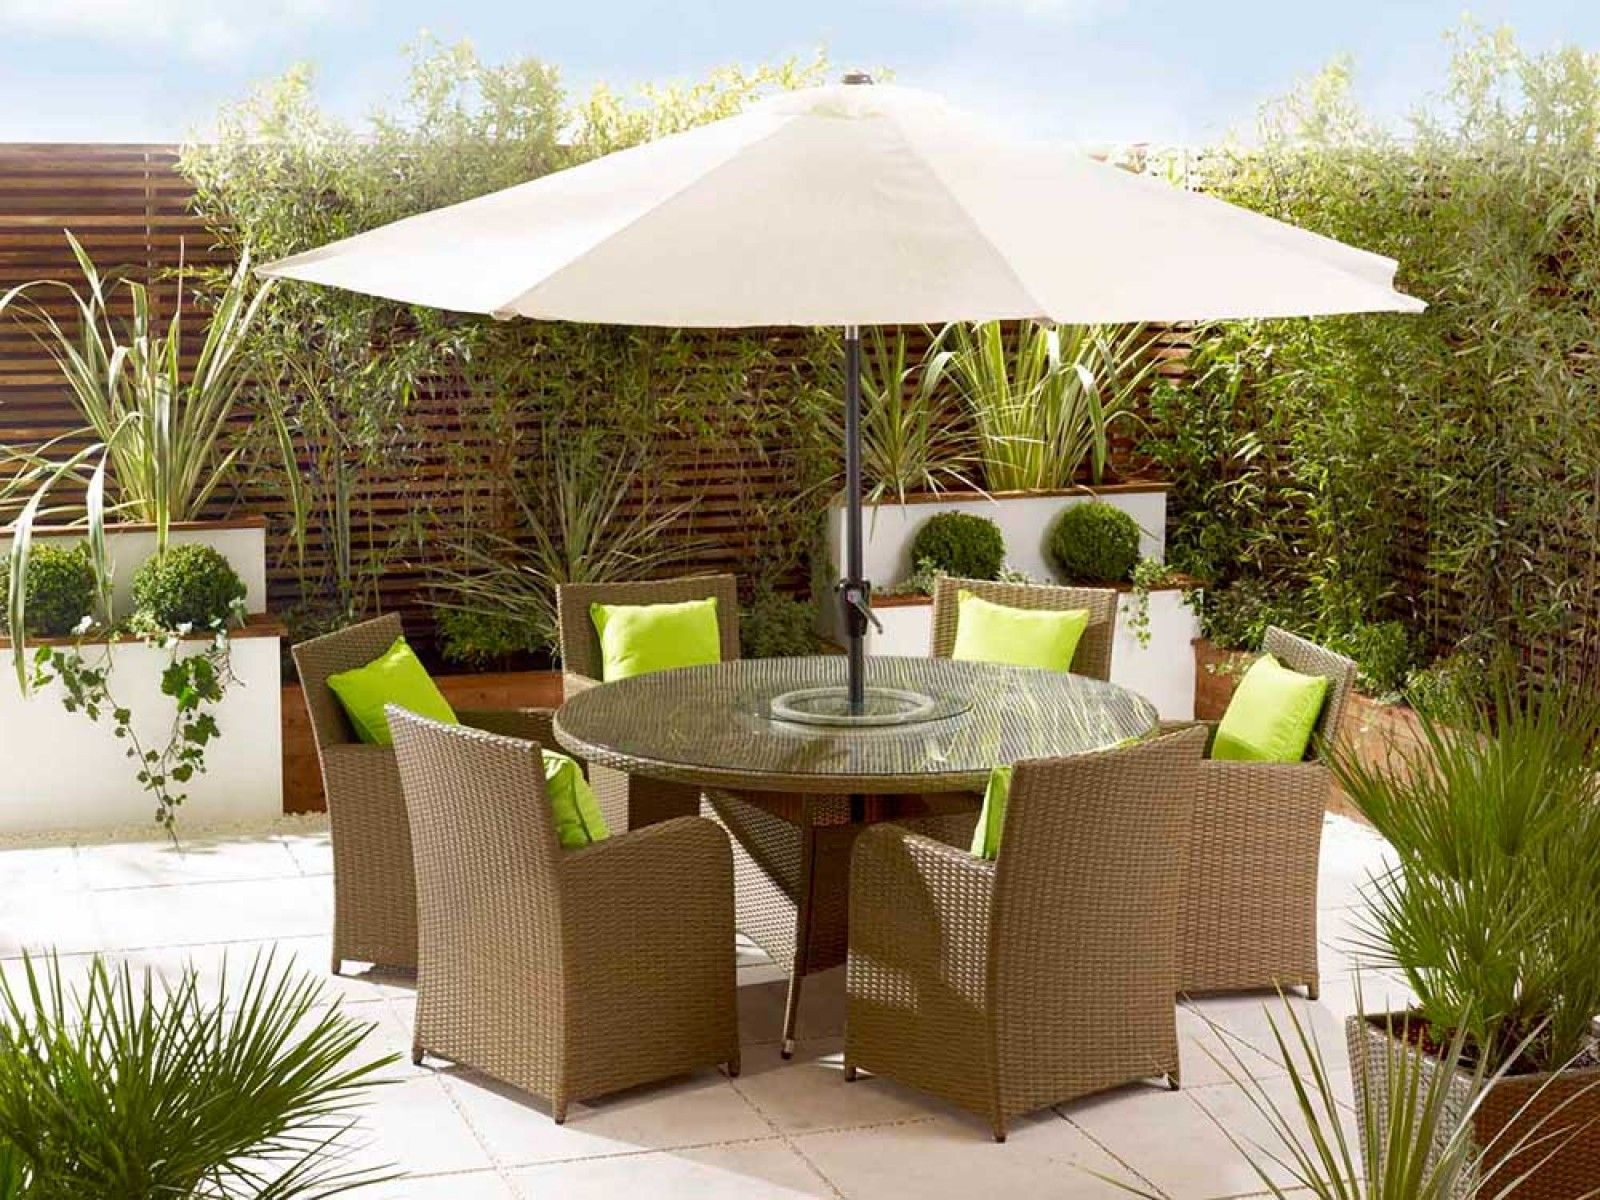 6 Seater Rattan Dining Set   Rattan Garden Furniture | Living It Up |  Living It